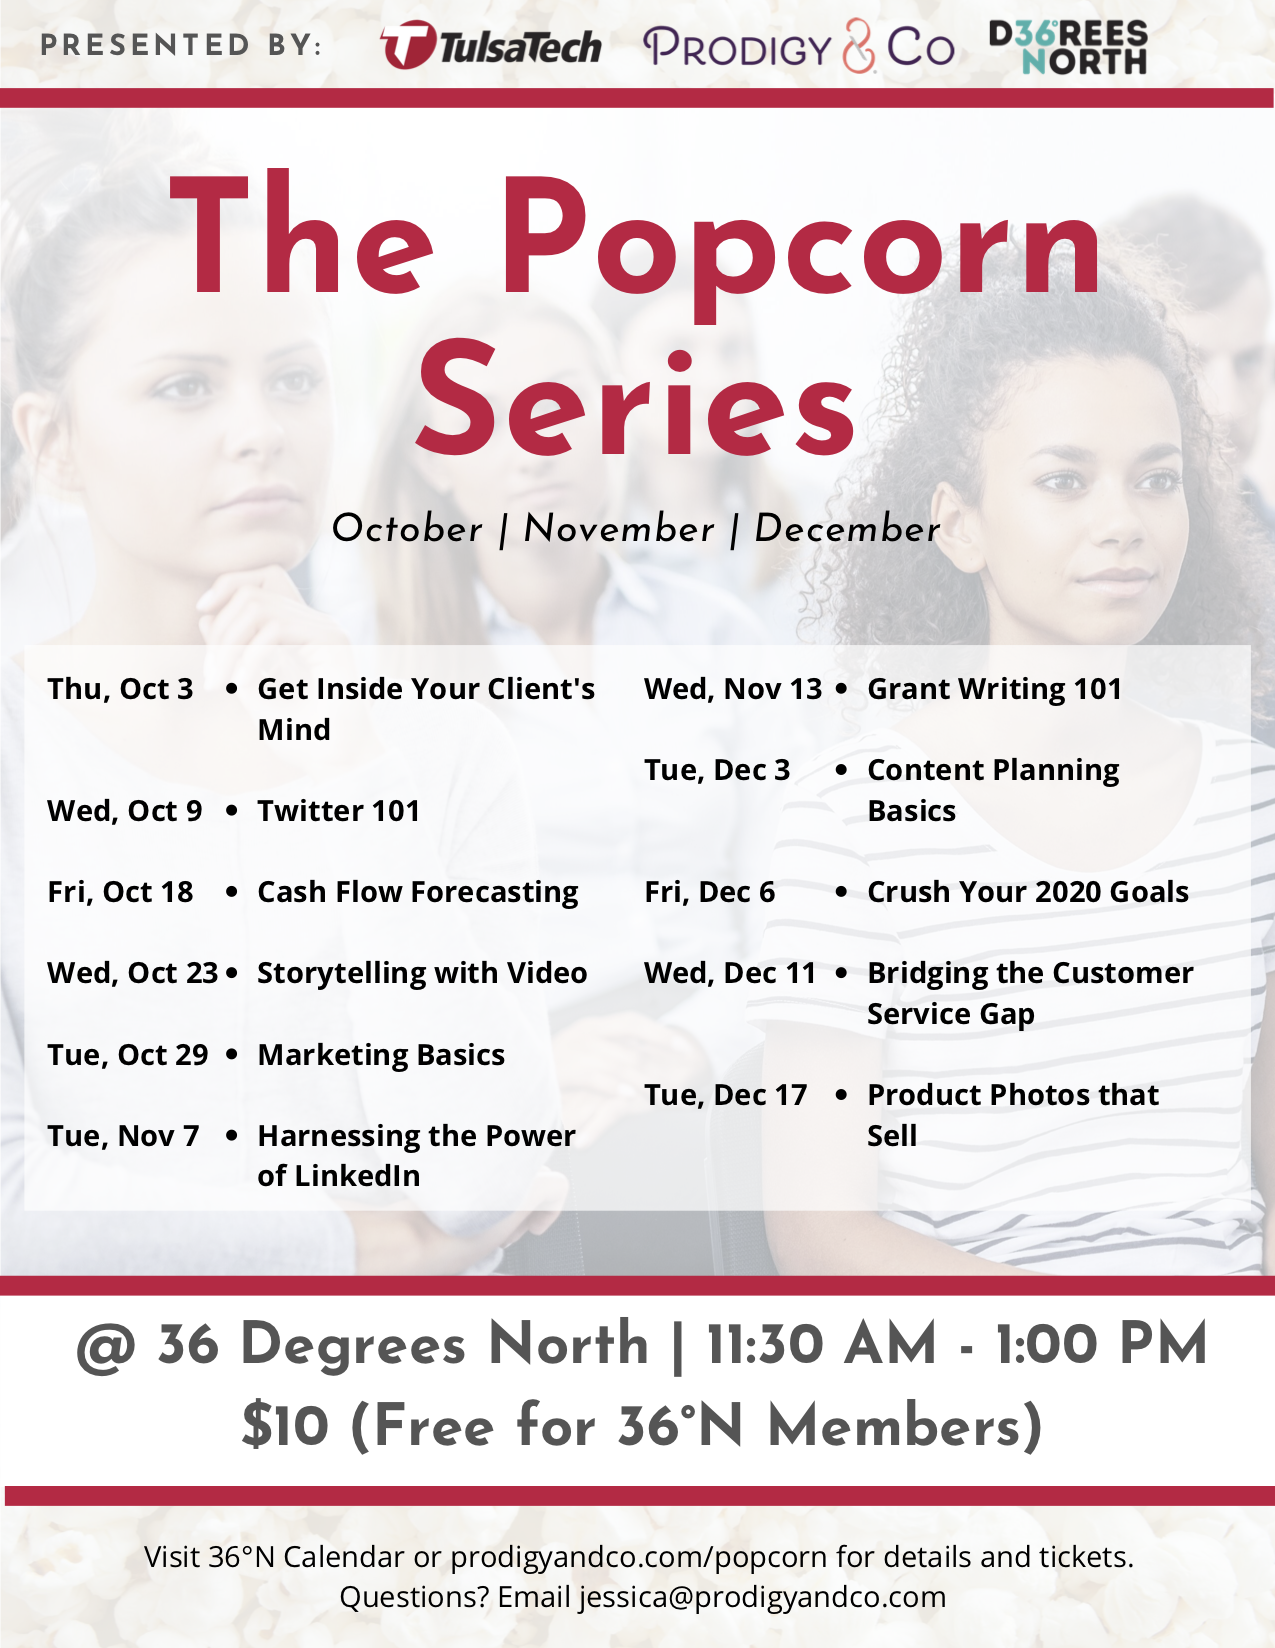 Q4 Popcorn Series Flyer.png